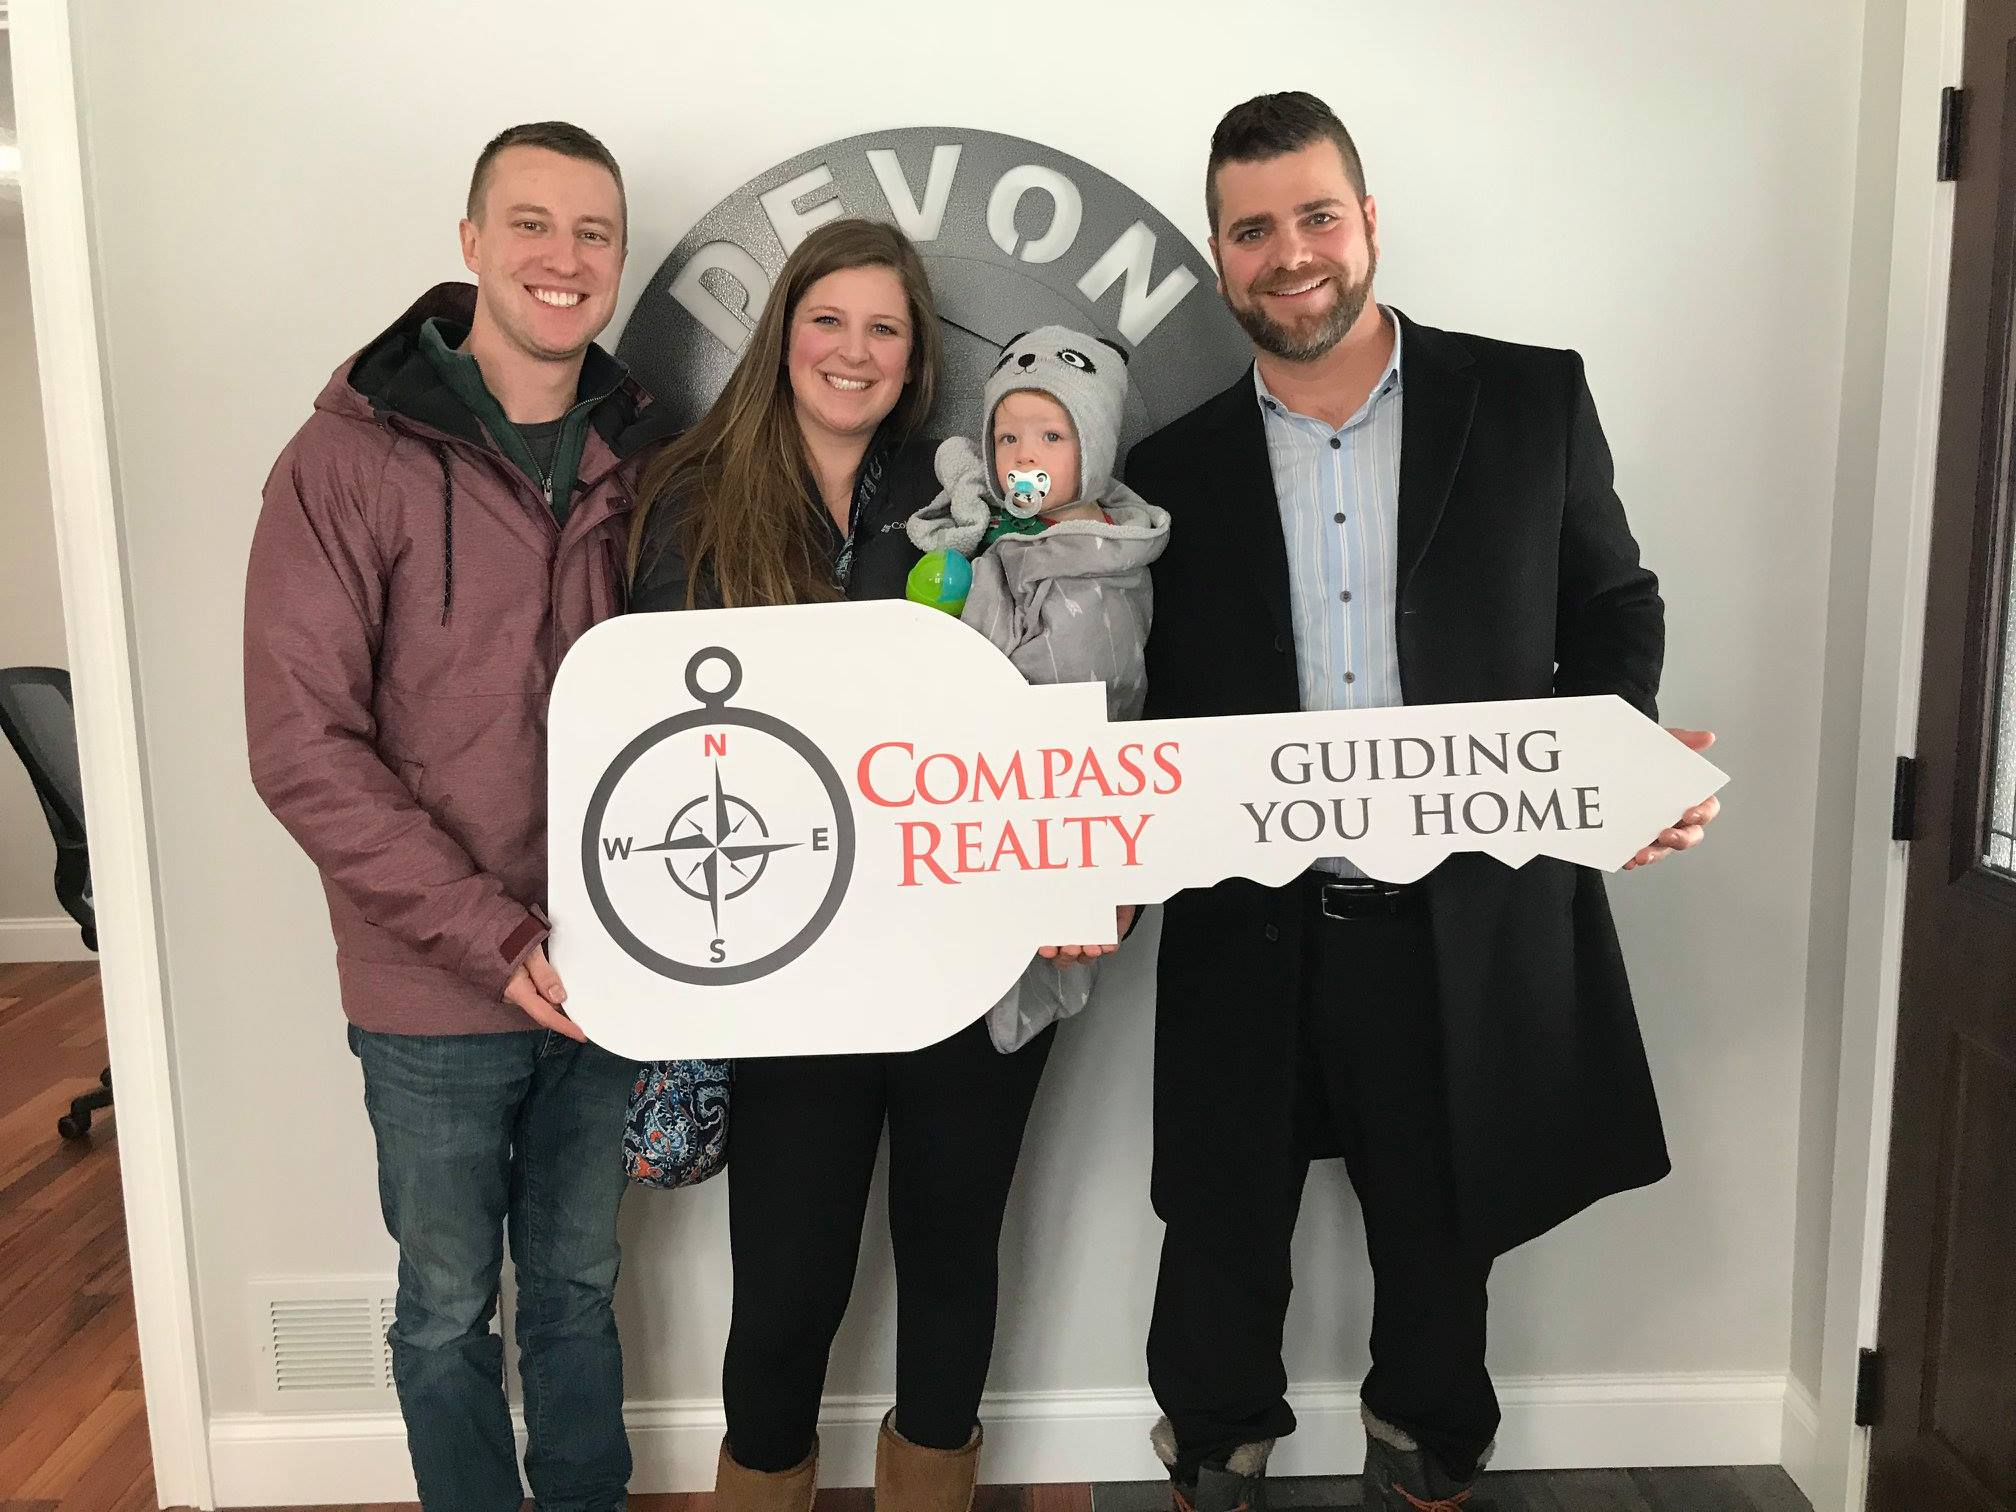 - Congratulations to Brandon and Aubry on your new home purchase in Paw Paw! It was an honor to represent you and your family through this process. Thank you for trusting us at Compass Realty to Guide you Home.